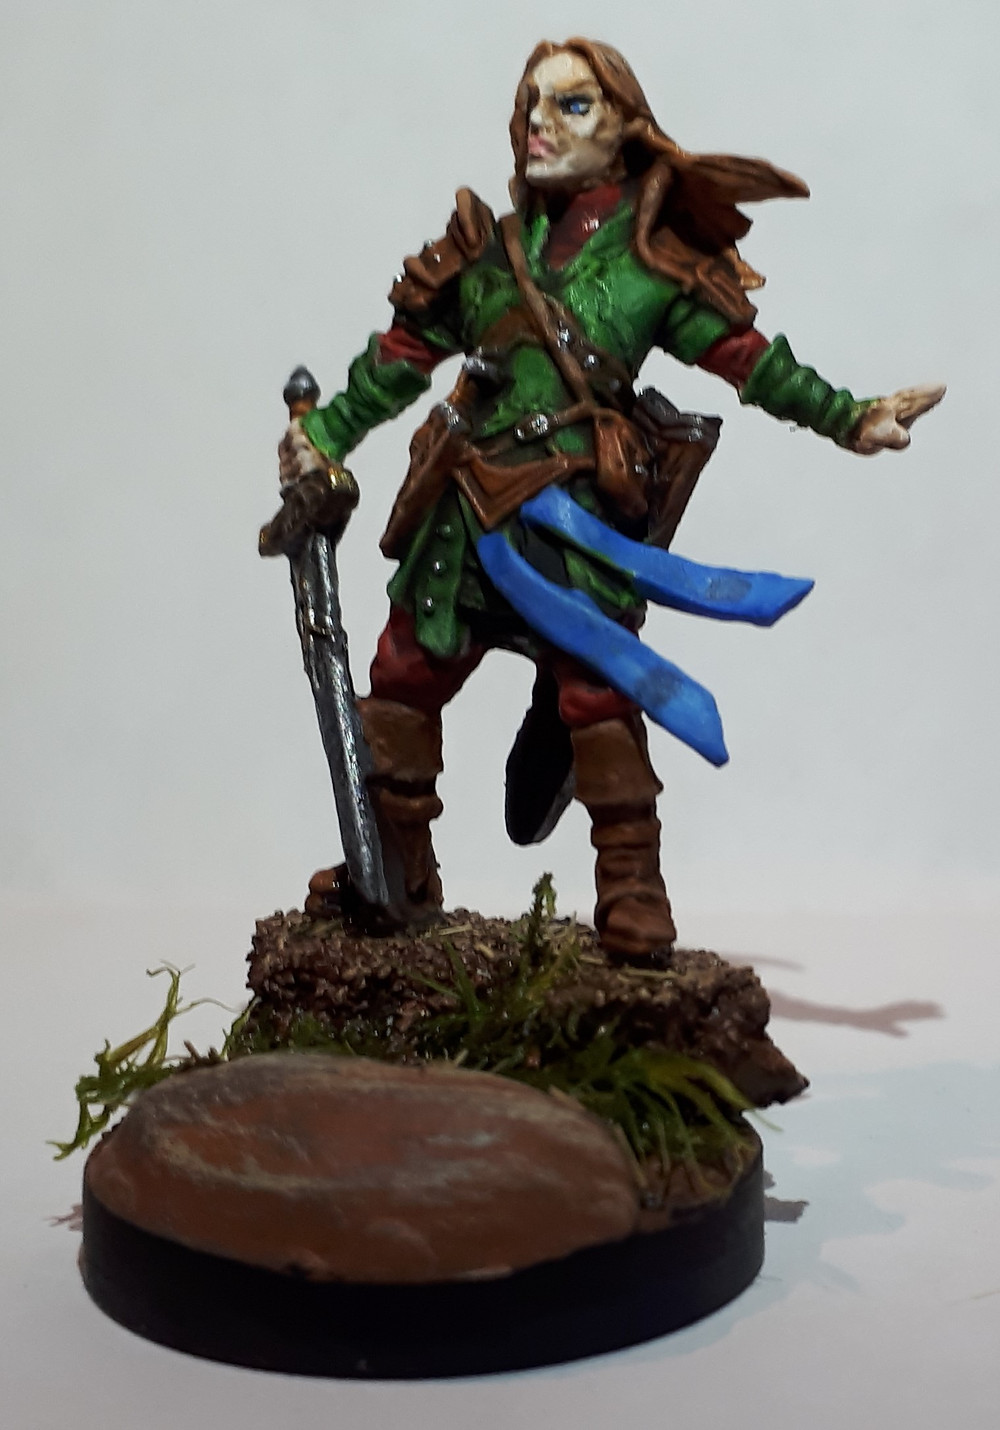 I loved the pose on this miniature